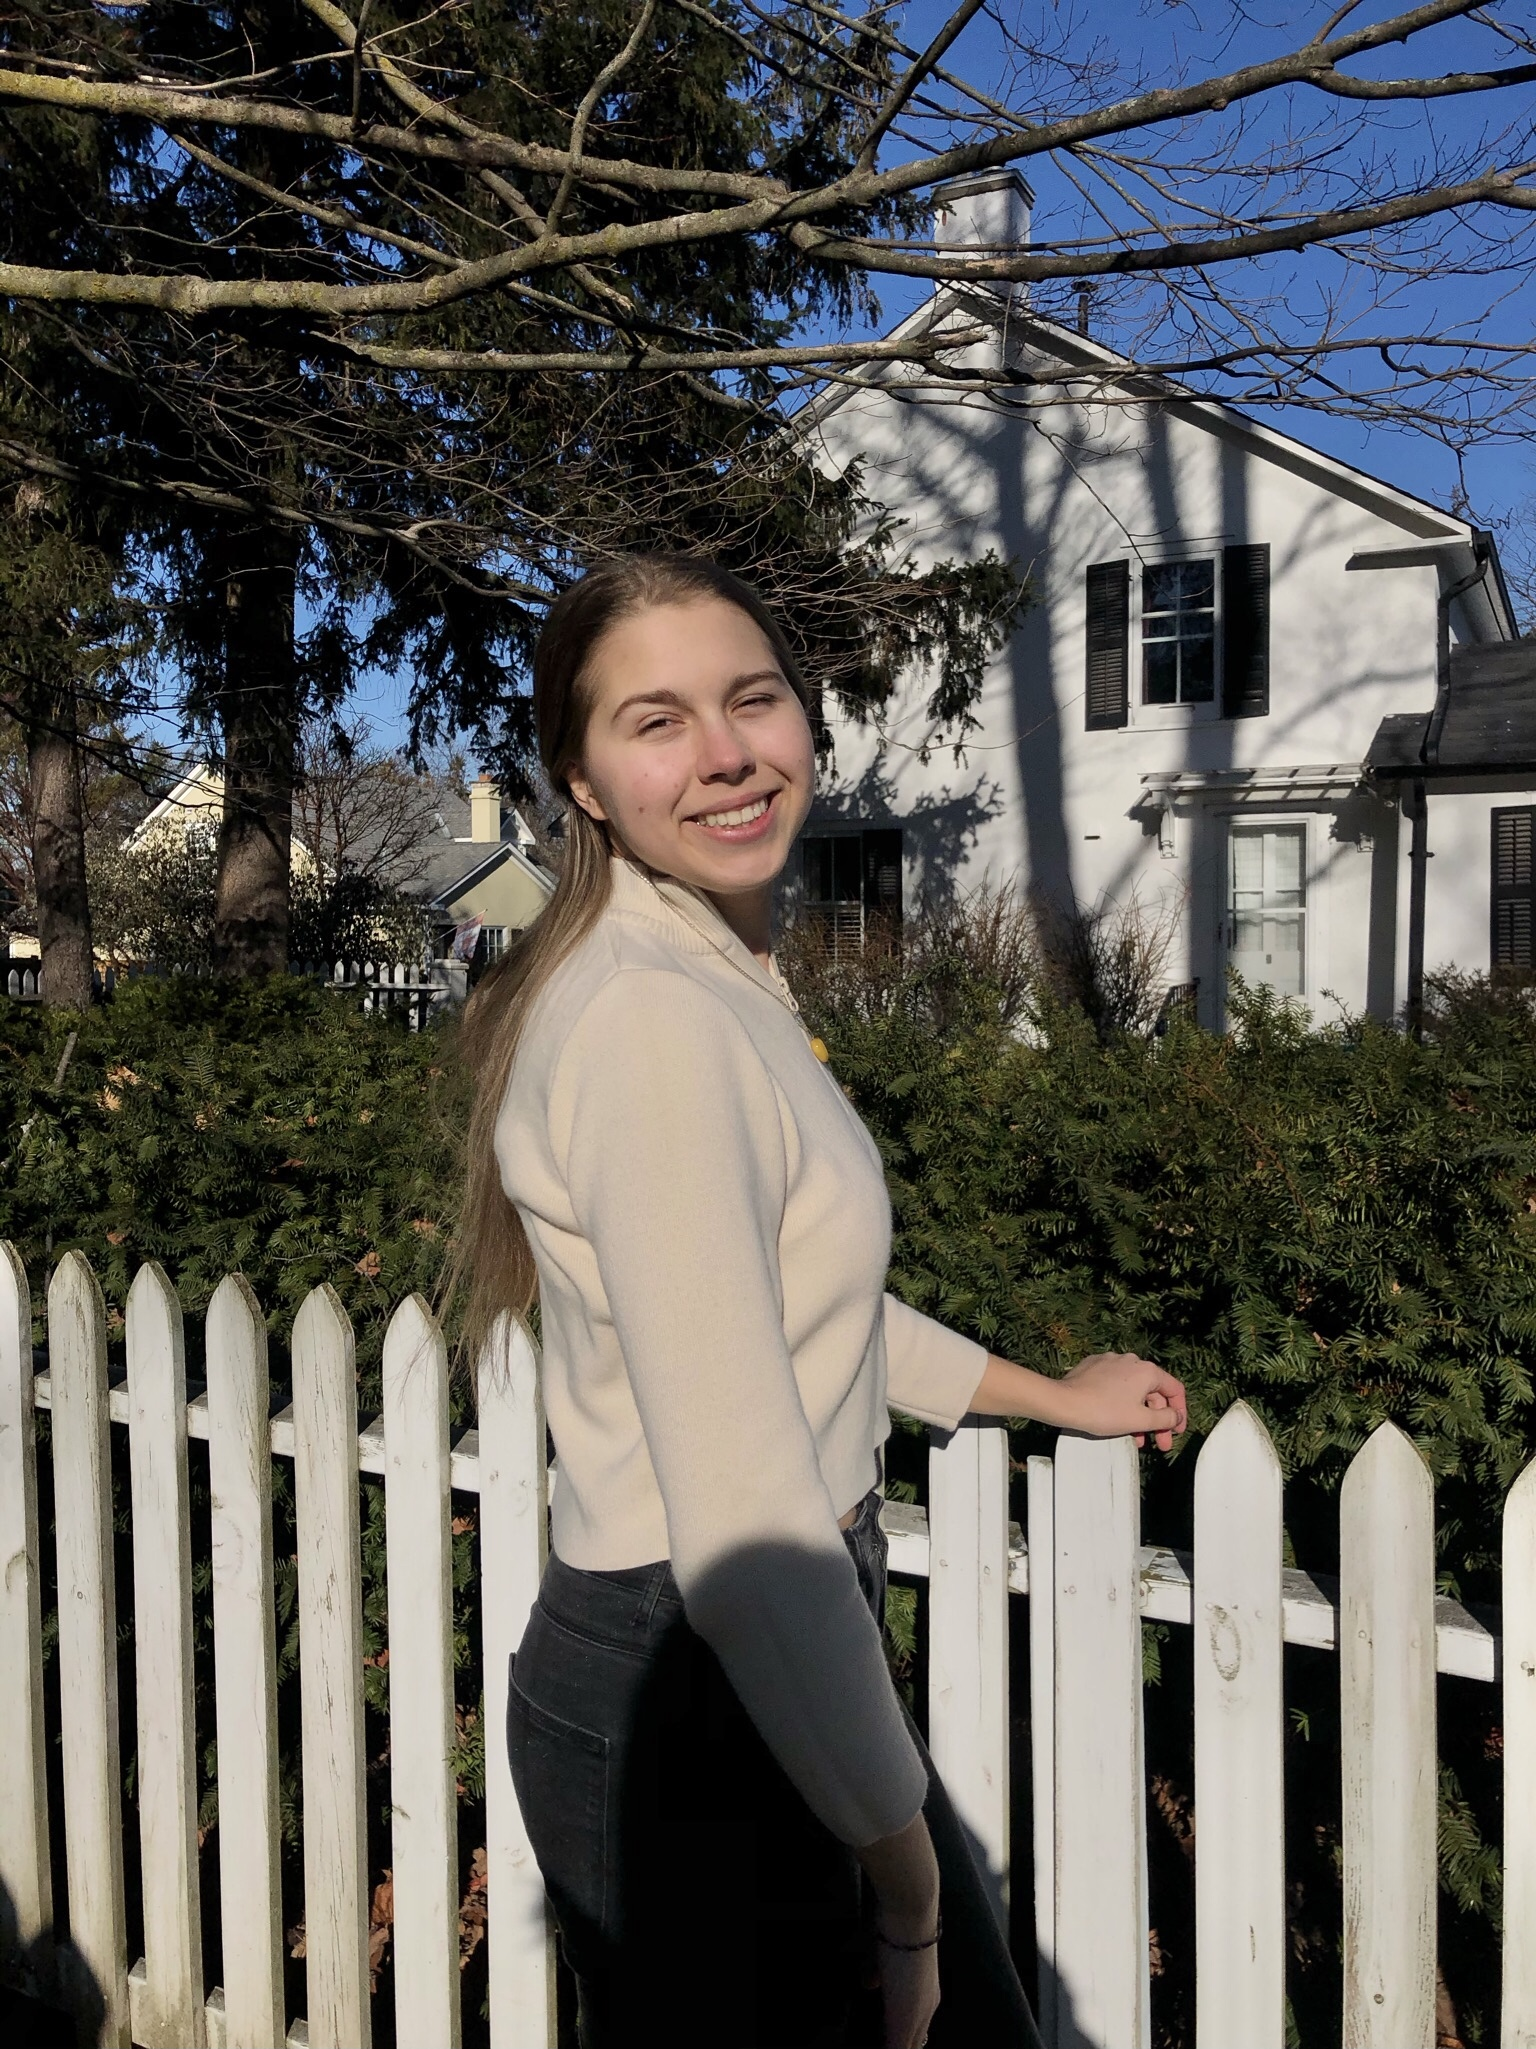 Natalia smiling infront of a white fence outside